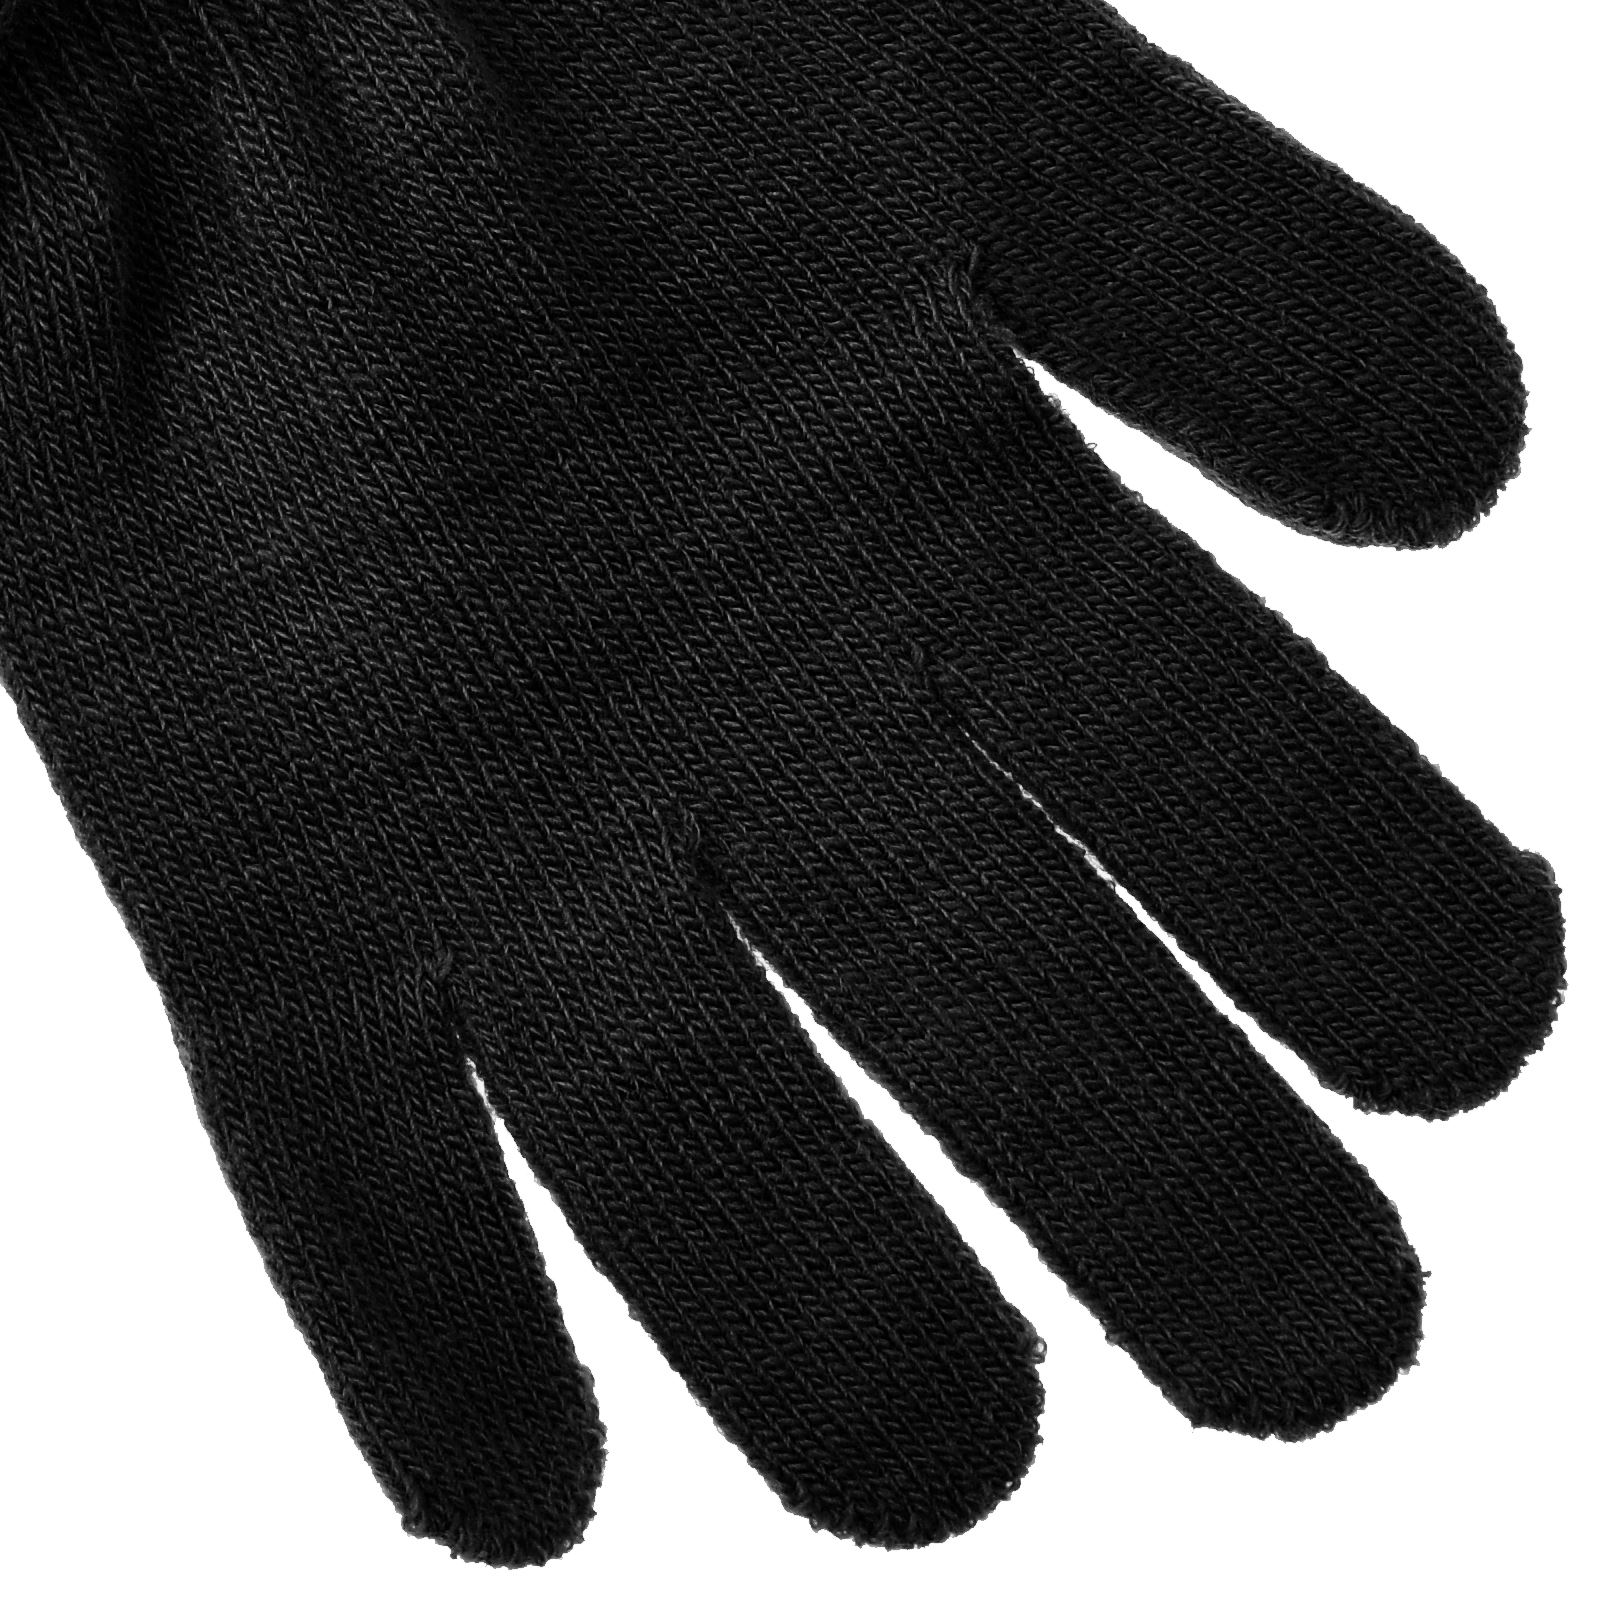 MAGIC WINTER  WARM  GRIPPER GLOVES BLACK ONE SIZE FIT ALL